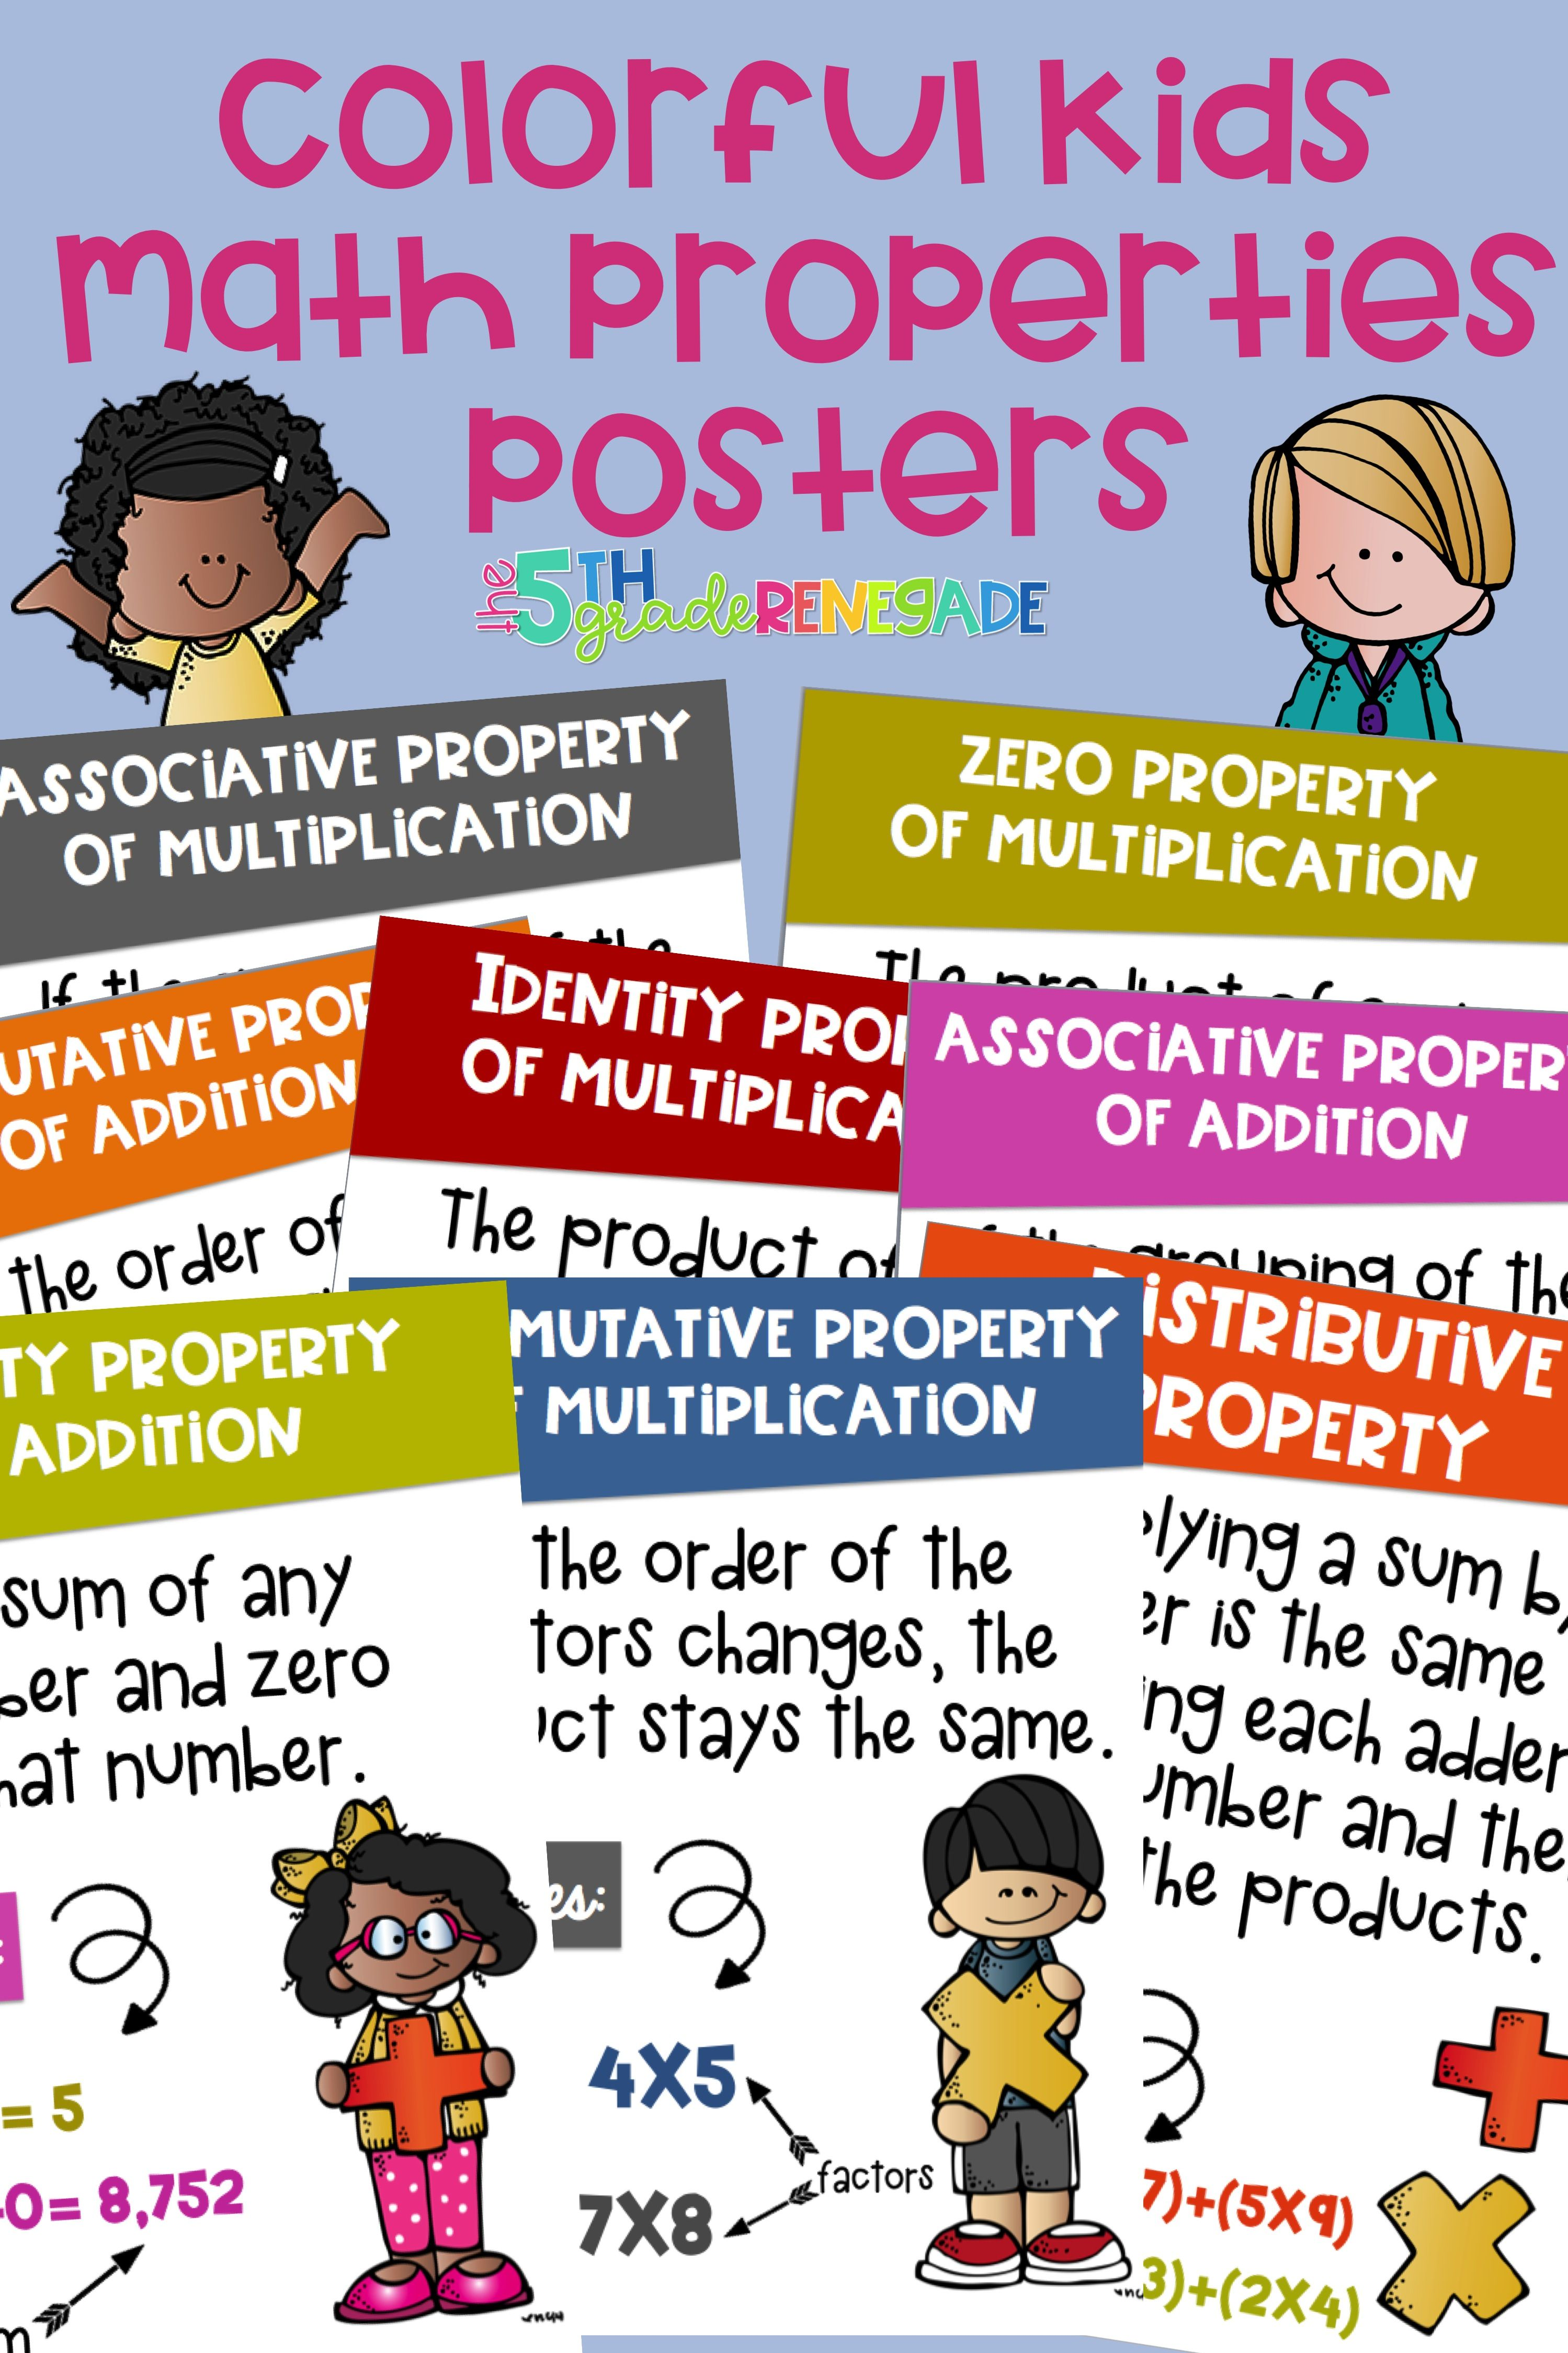 Math Properties Posters With Melonheadz Clipart Commutative Property Of Addition And Multiplication Associative Pro Math Properties Math Associative Property What is zero property of addition